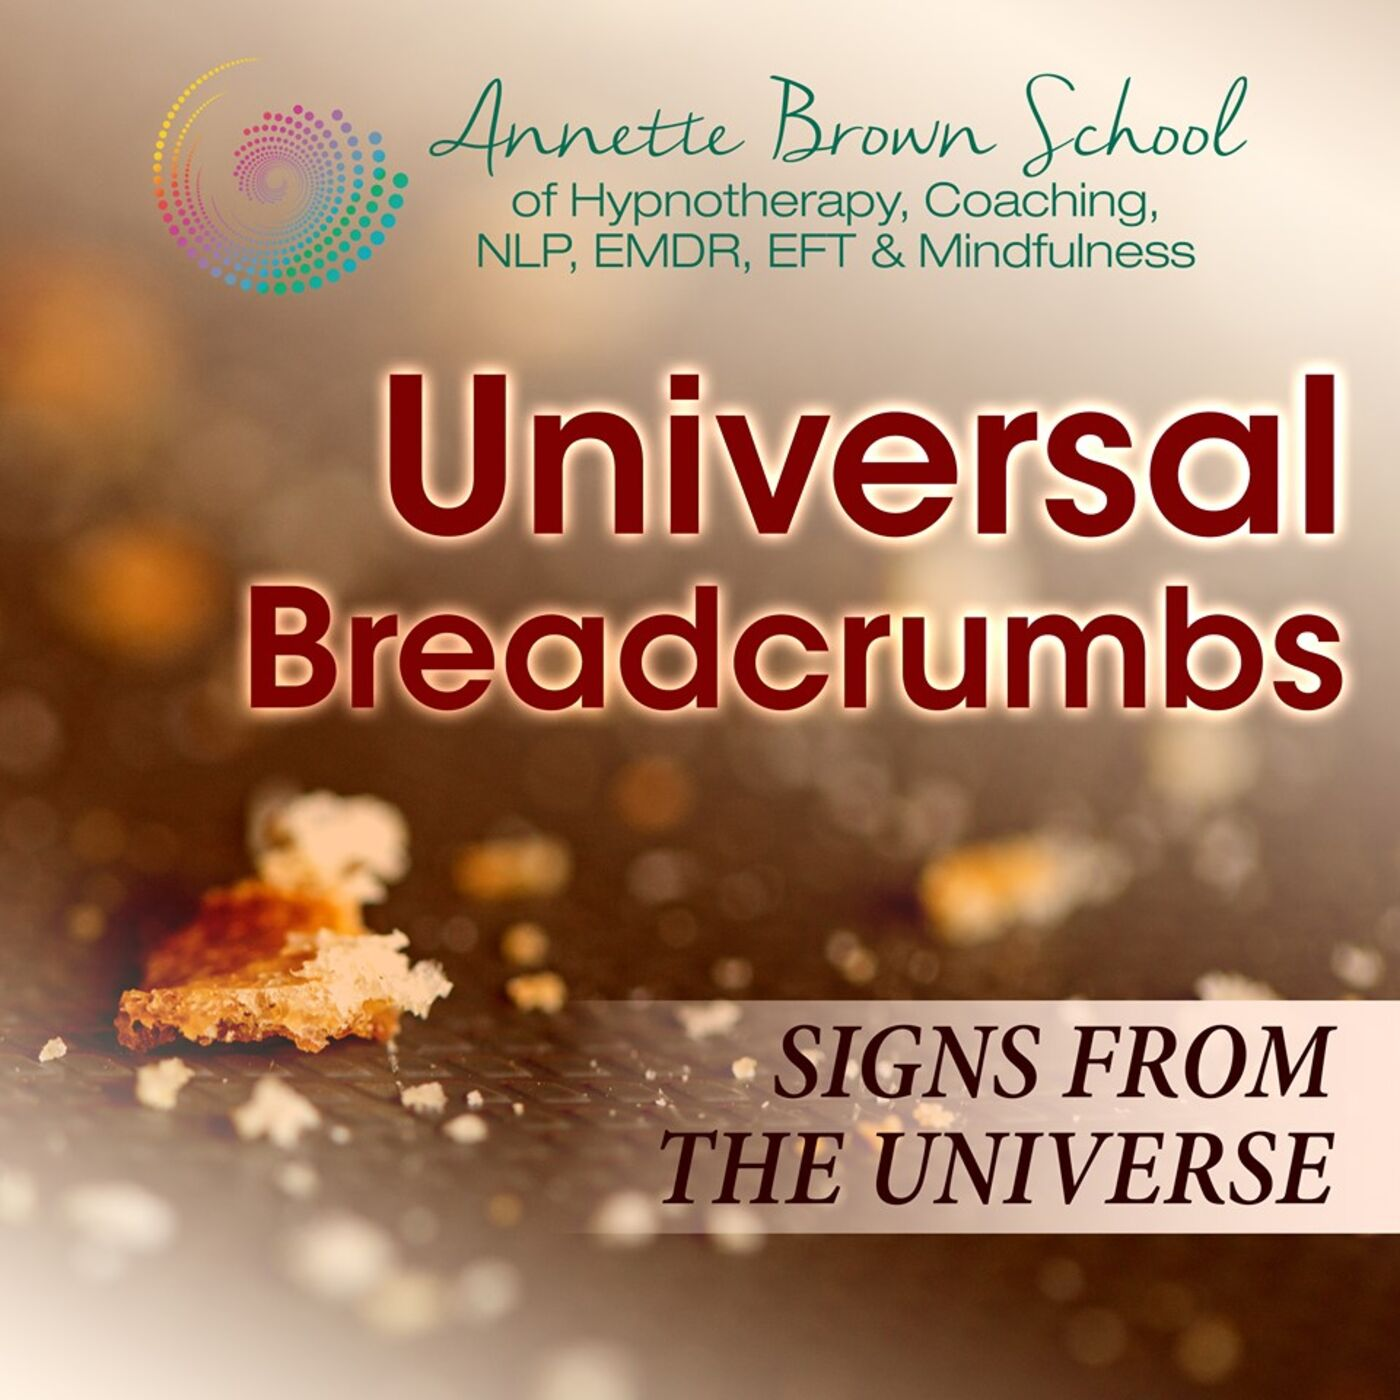 Universal Breadcrumbs (Universal Signs and Messages)